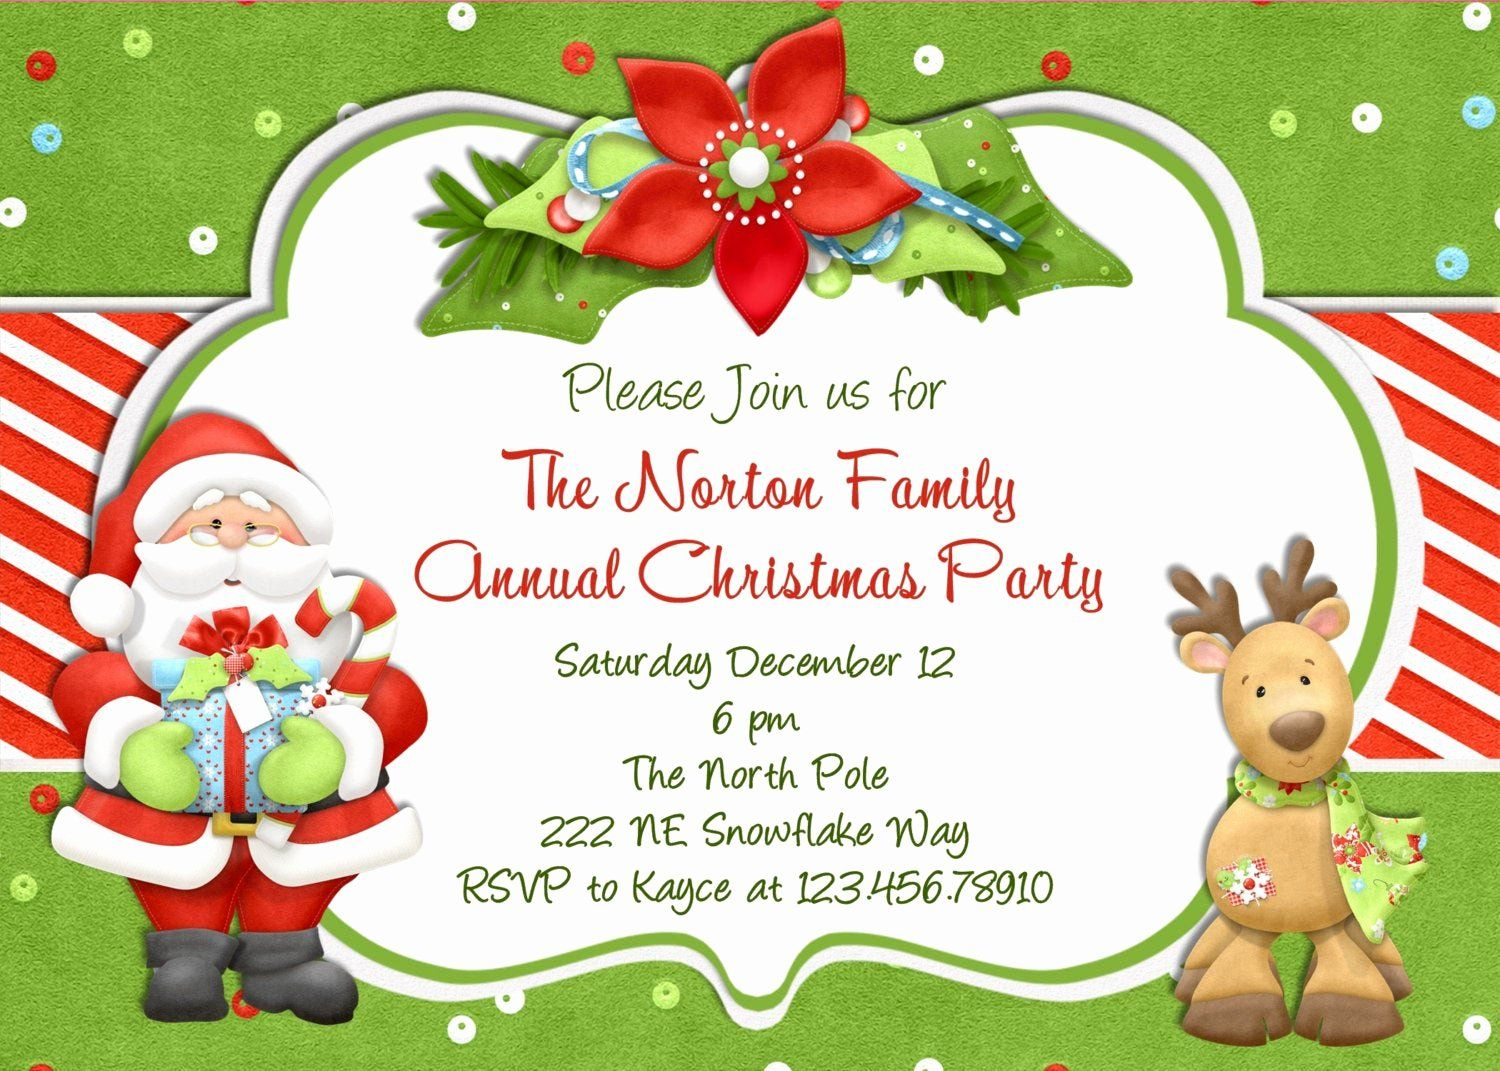 Christmas Party Invitation Template Free Lovely Christ Christmas Party Invitation Template Free Christmas Invitation Templates Christmas Party Invitations Free